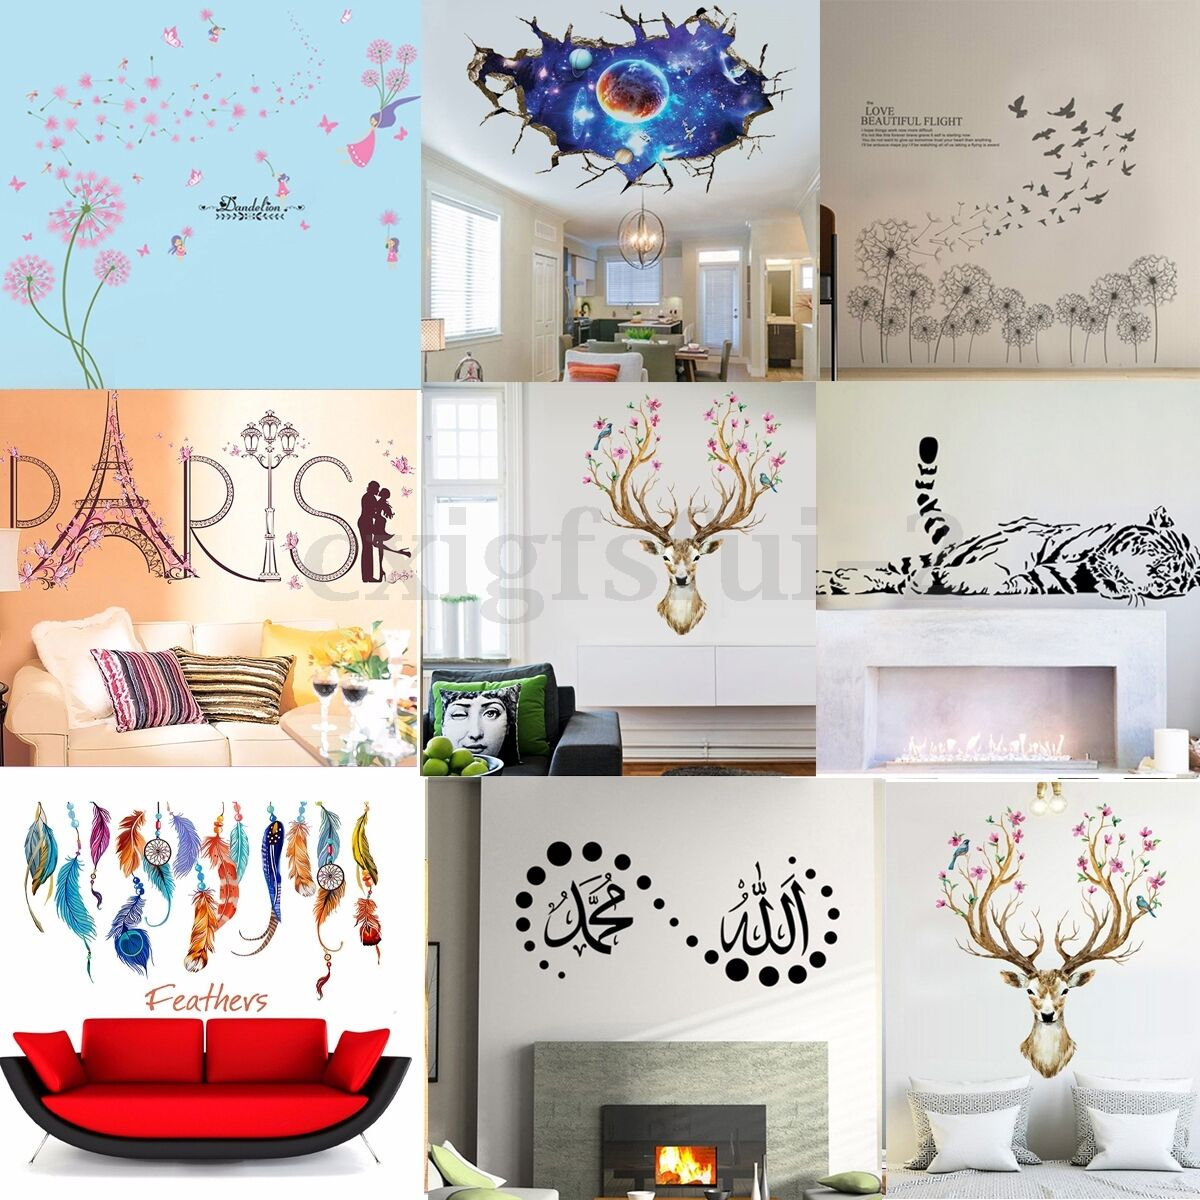 Diy removable vinyl wall sticker boys girls decals mural for Diy wall photo mural